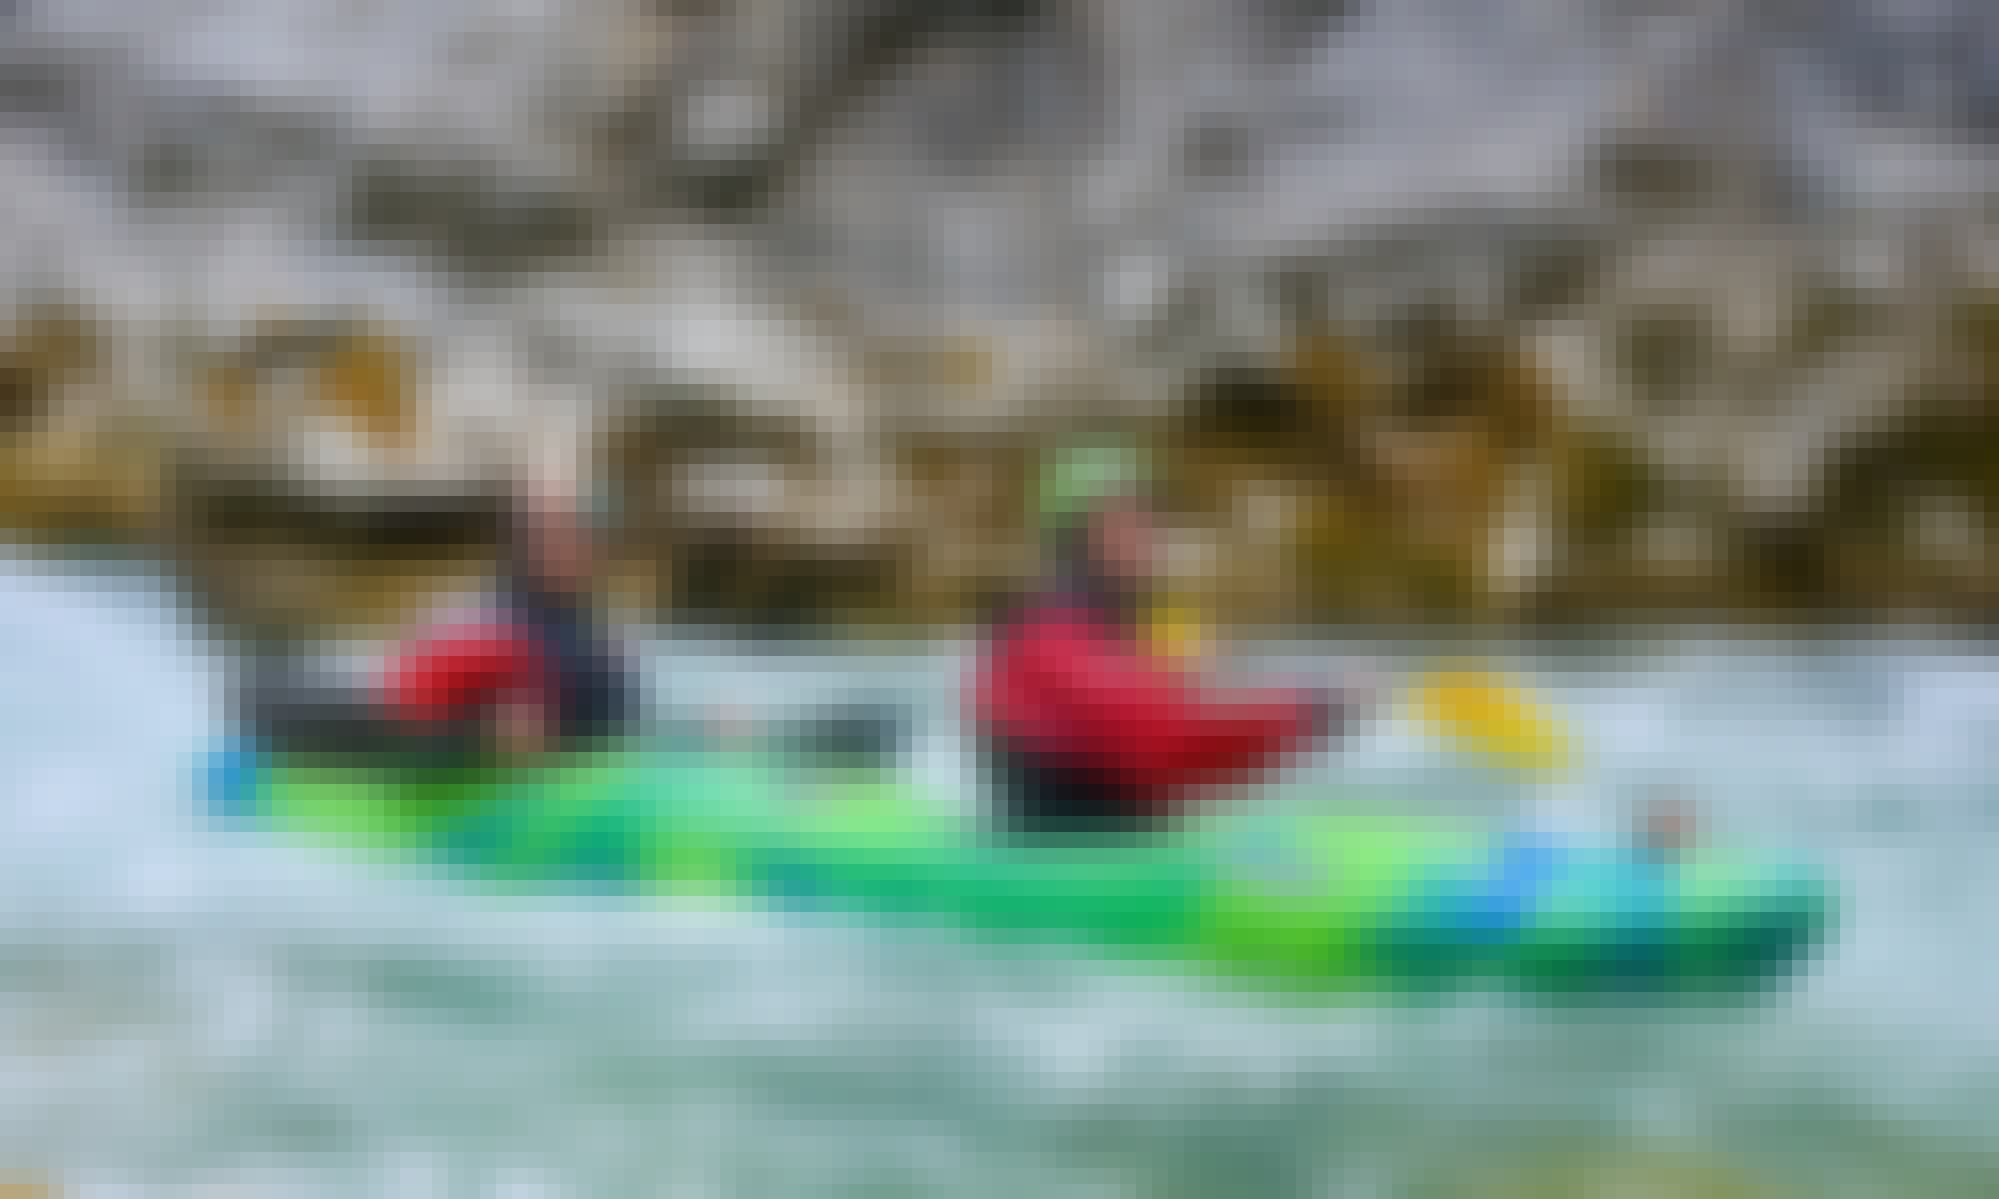 Grand Canyon Kayak Expedition in Castellane, France